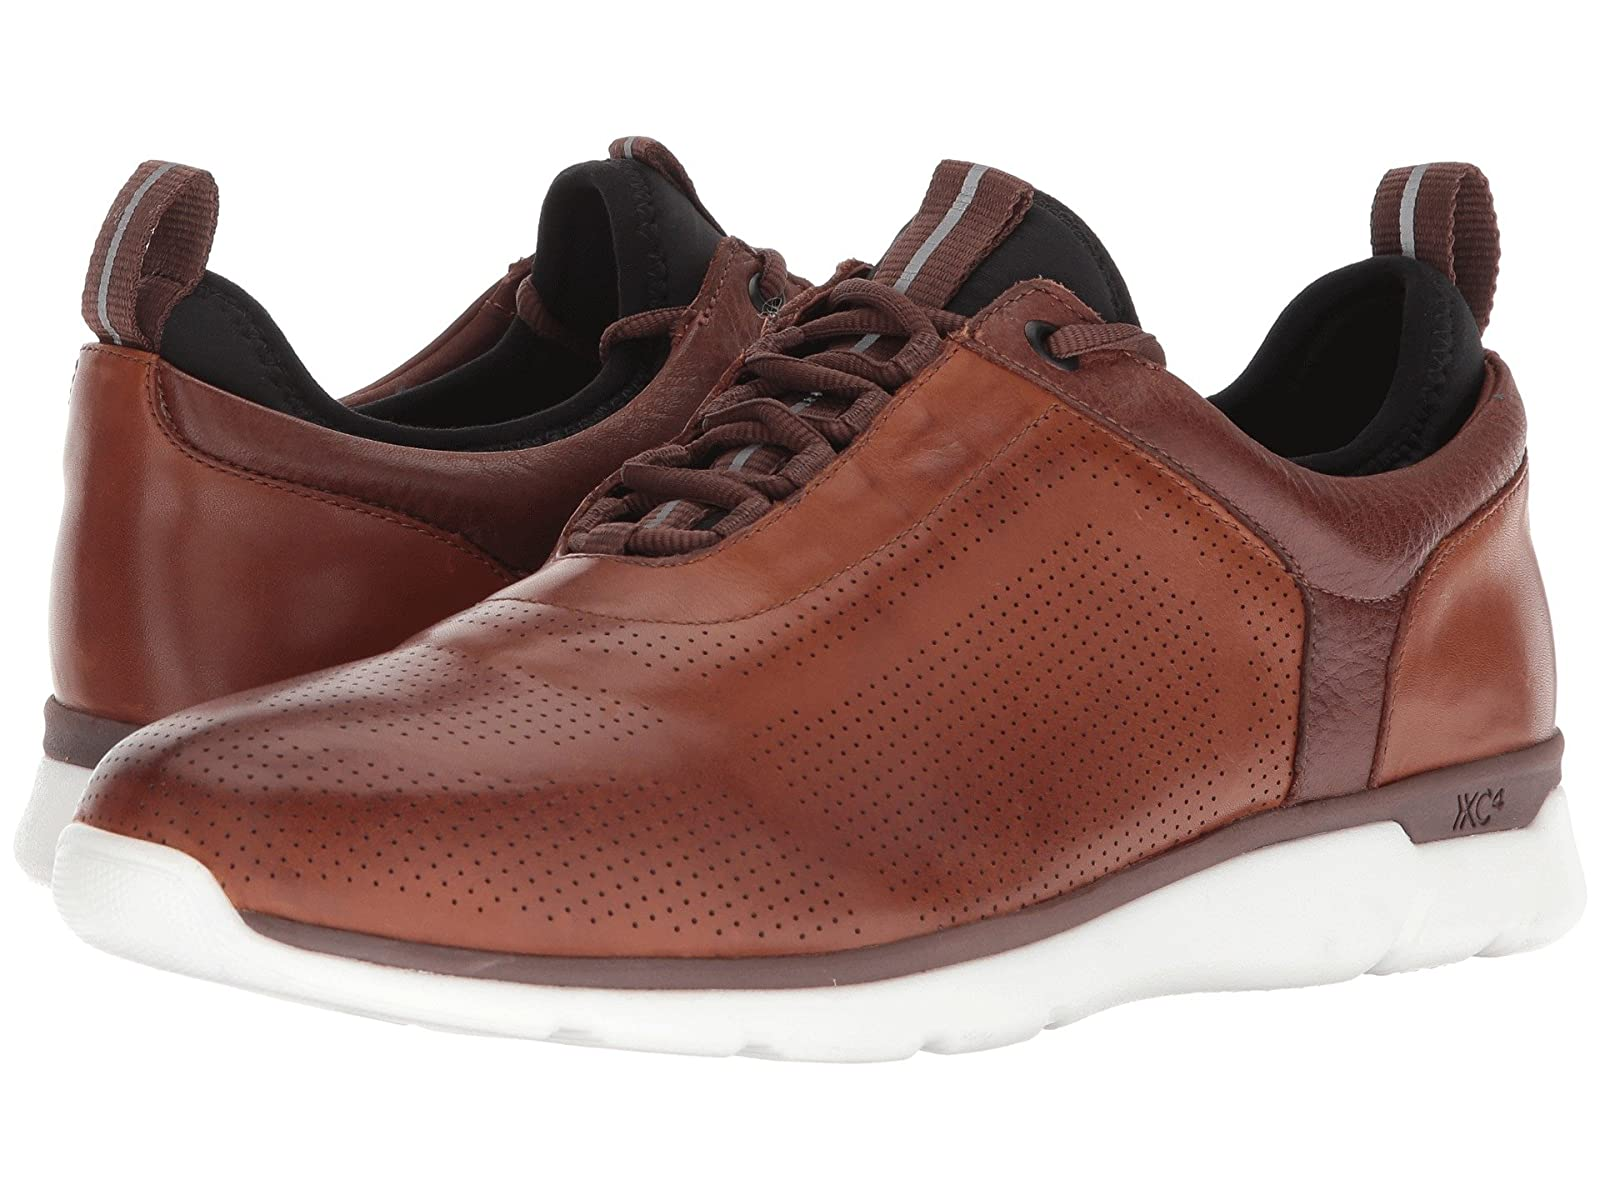 Johnston & Murphy Waterproof Prentiss XC4(R) Casual Dress SneakerAtmospheric grades have affordable shoes